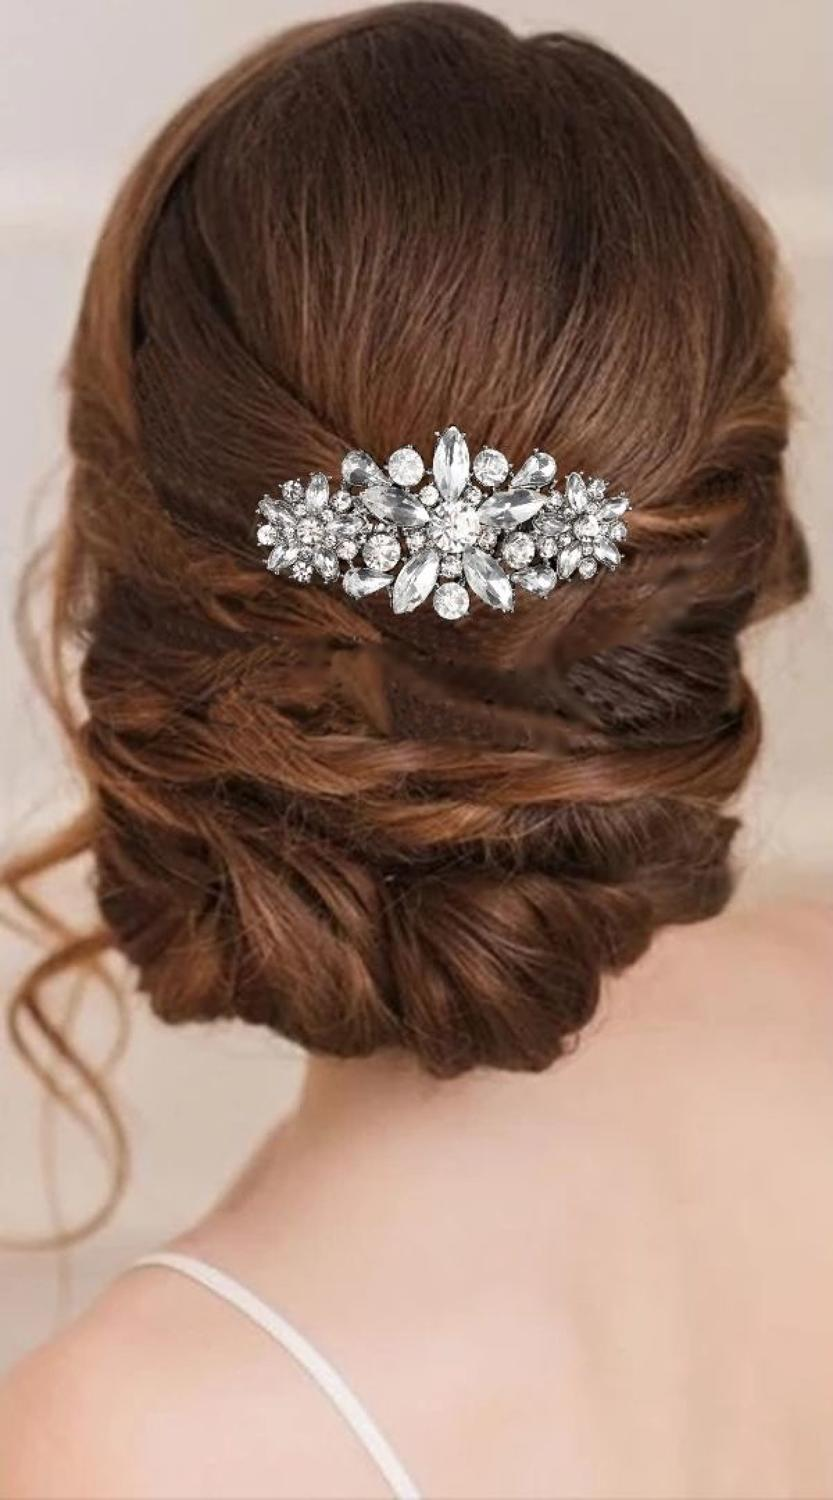 Crystal flower cluster hair comb